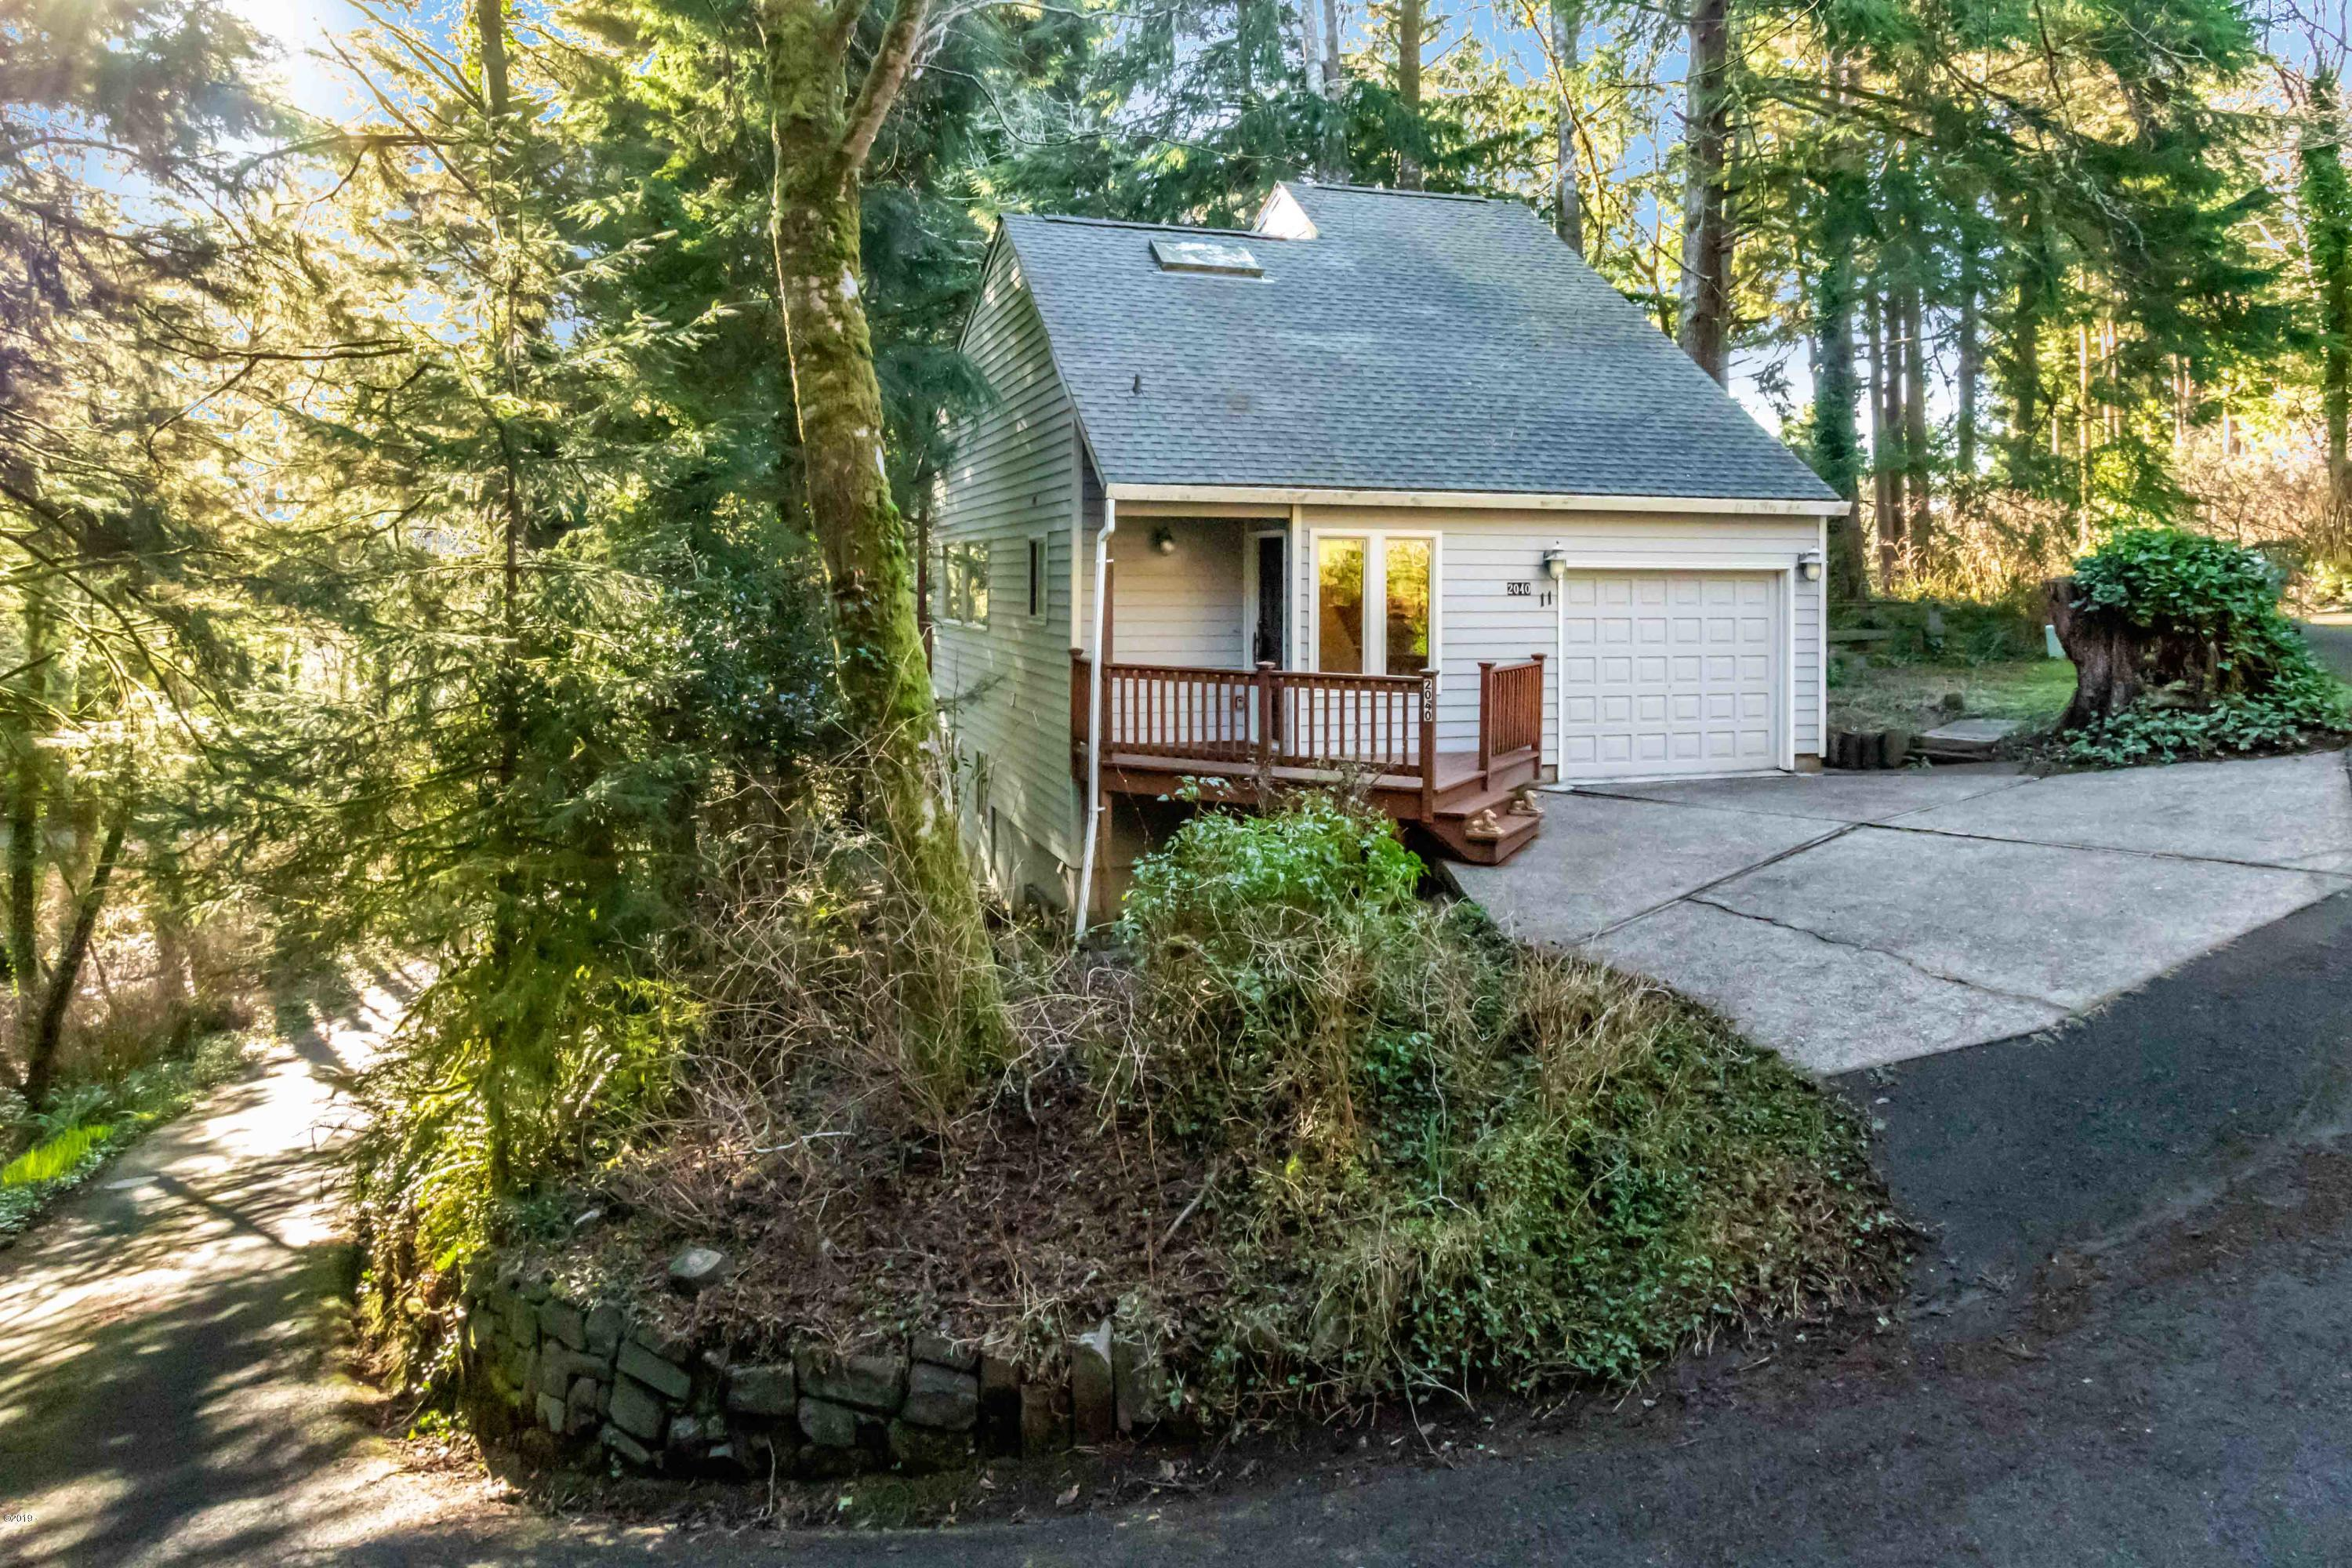 2040 NE Devil's Ridge Rd, Lincoln City, OR 97367 - 2040 Devils Ridge-1